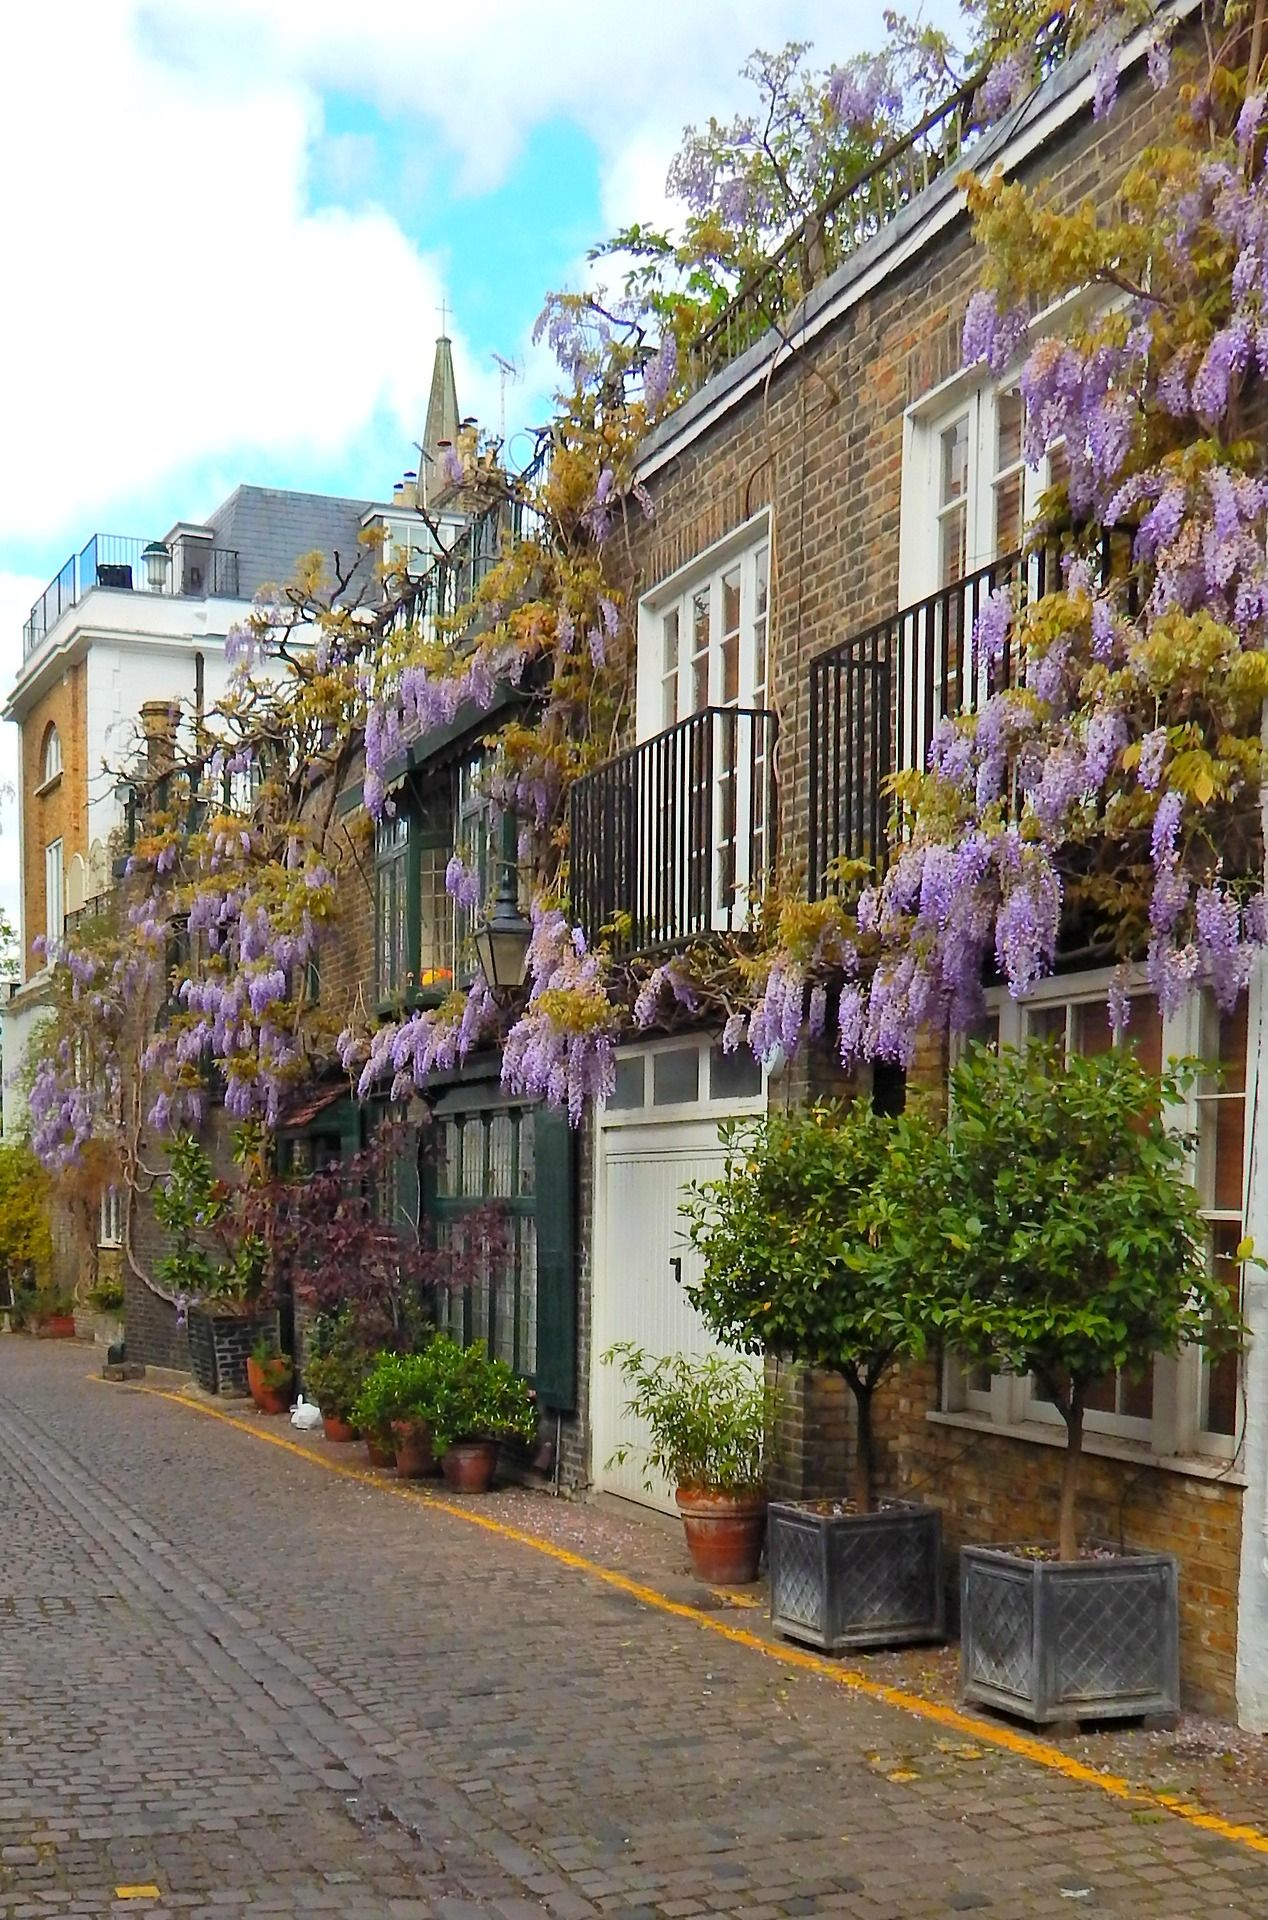 London Street Style With Camille Charrière At London: Blue Wisteria In Bloom At Kynance Mews, Kensington, London